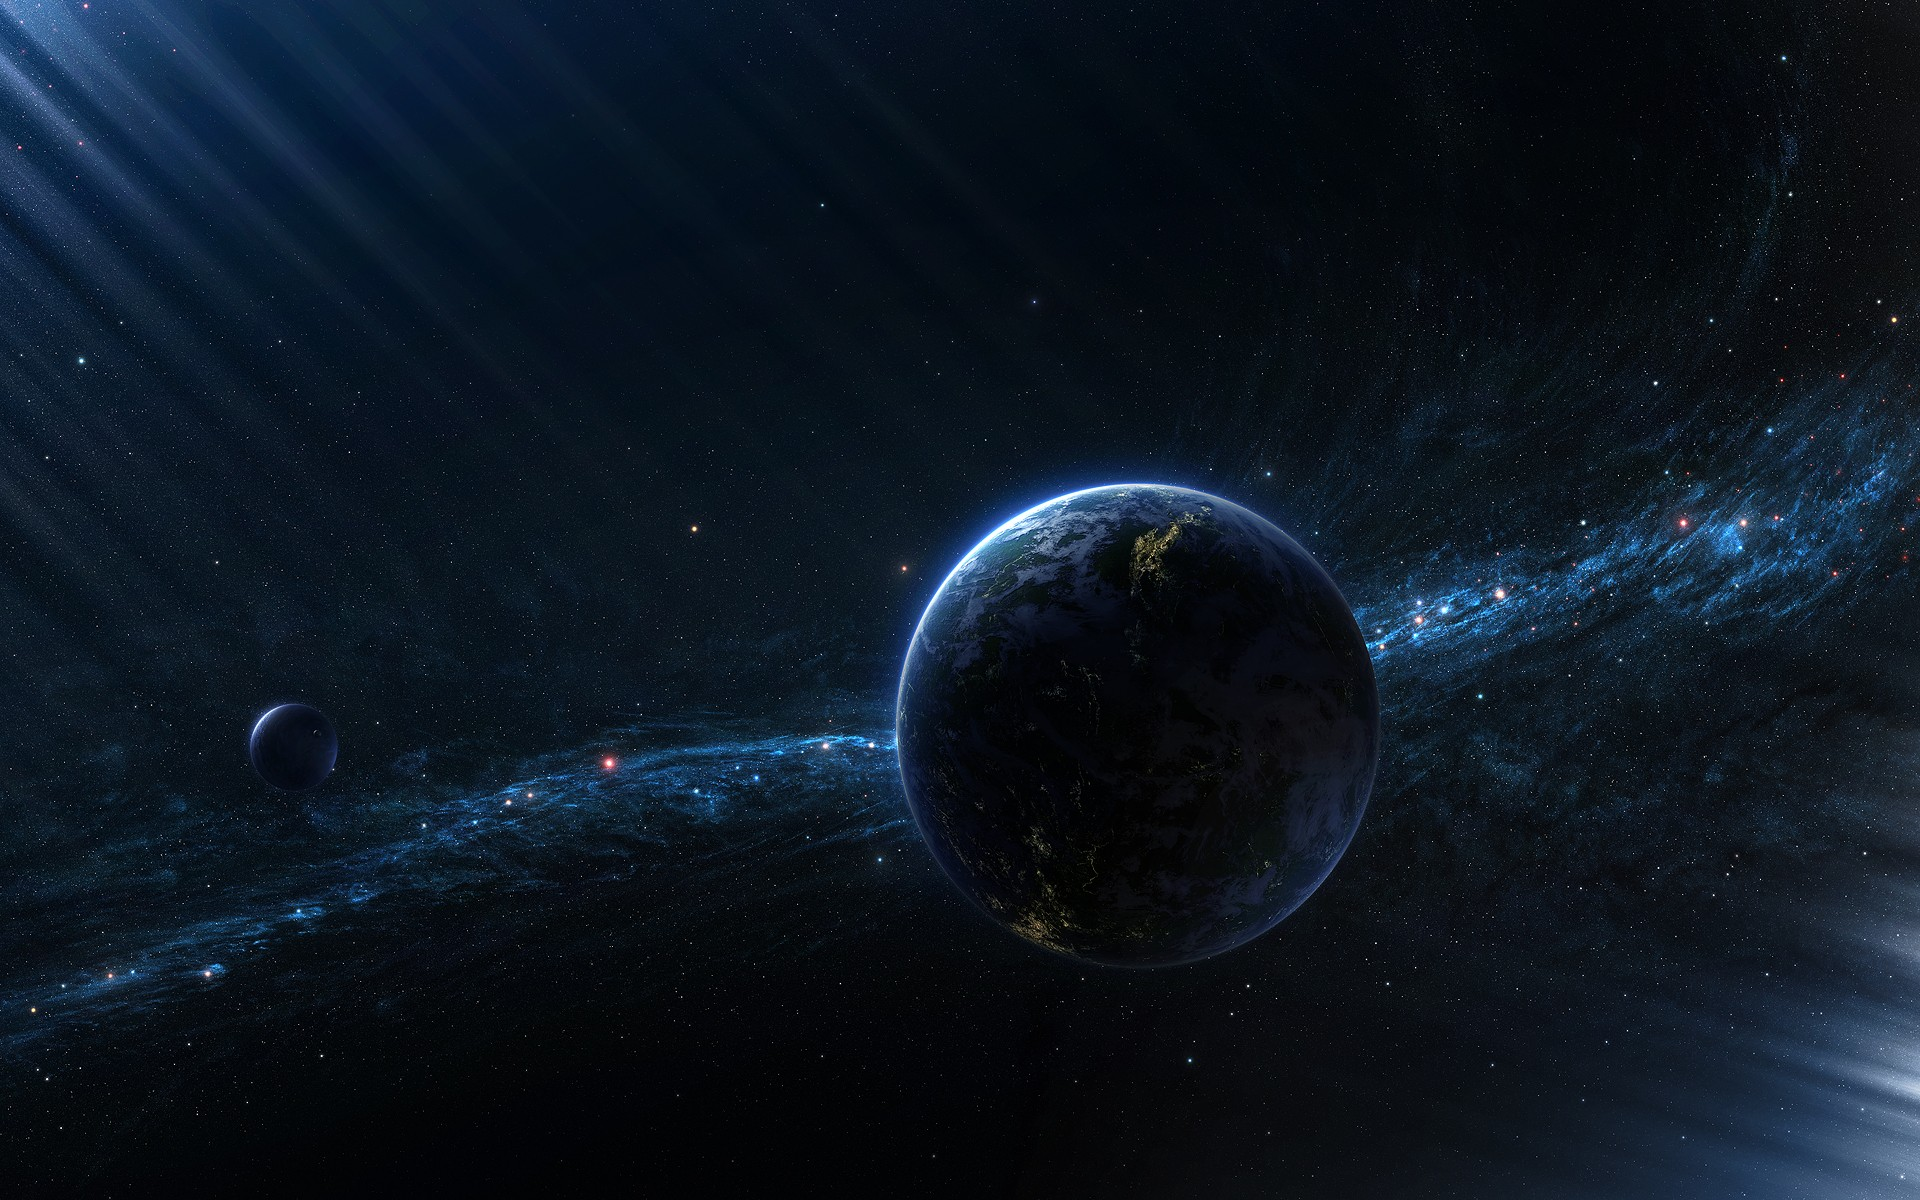 Outer Space Planets Deviantart HD Wallpapers   1767750 1920x1200